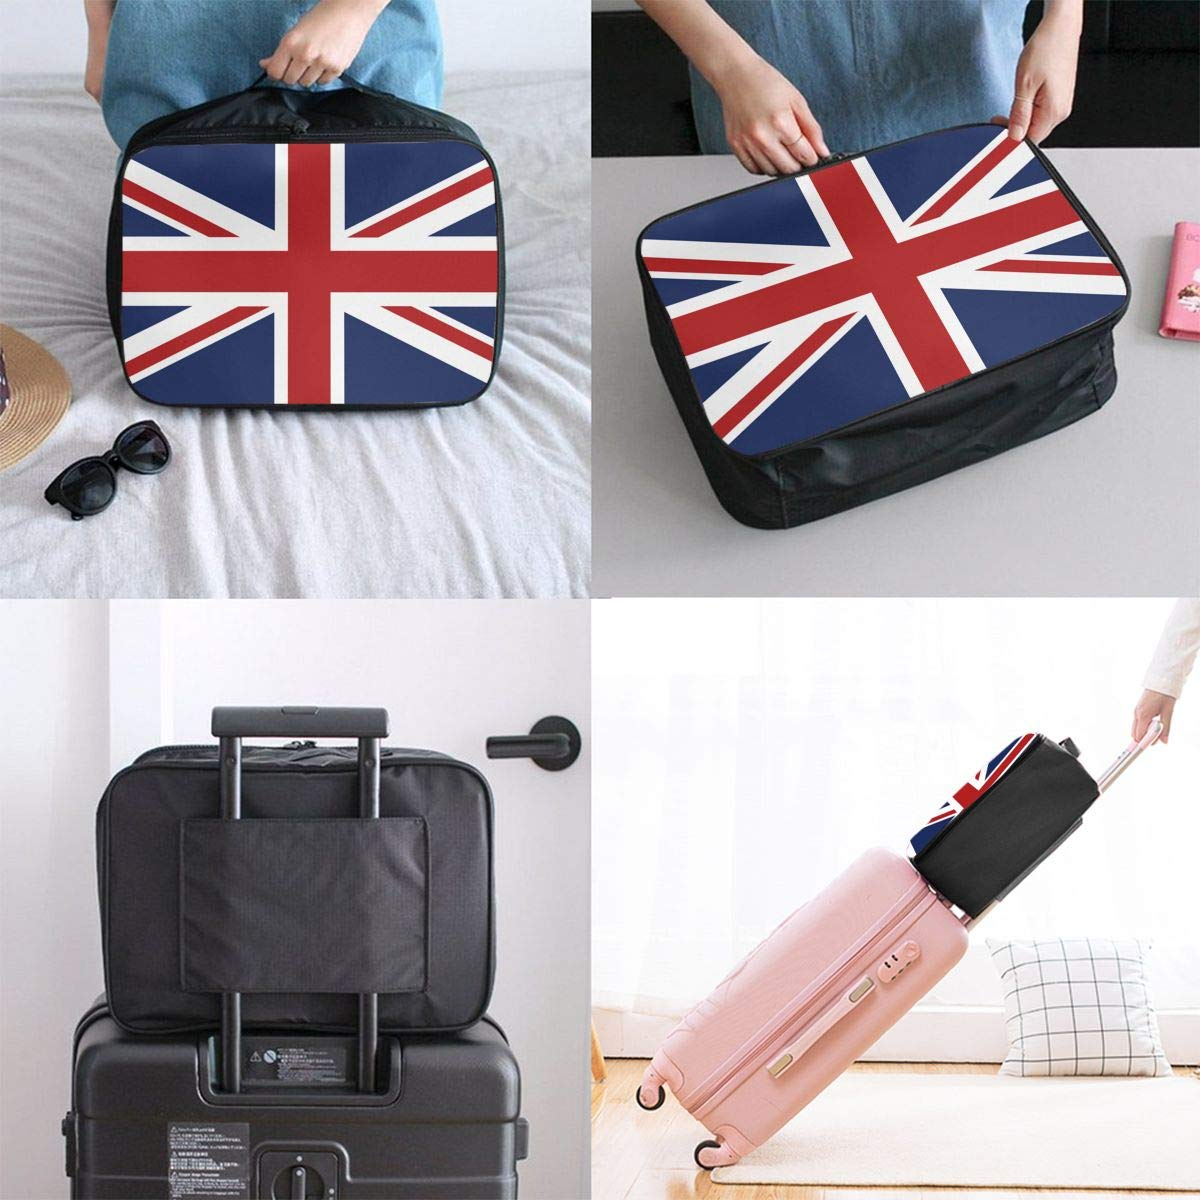 YueLJB Union Jack Flag Lightweight Large Capacity Portable Luggage Bag Travel Duffel Bag Storage Carry Luggage Duffle Tote Bag